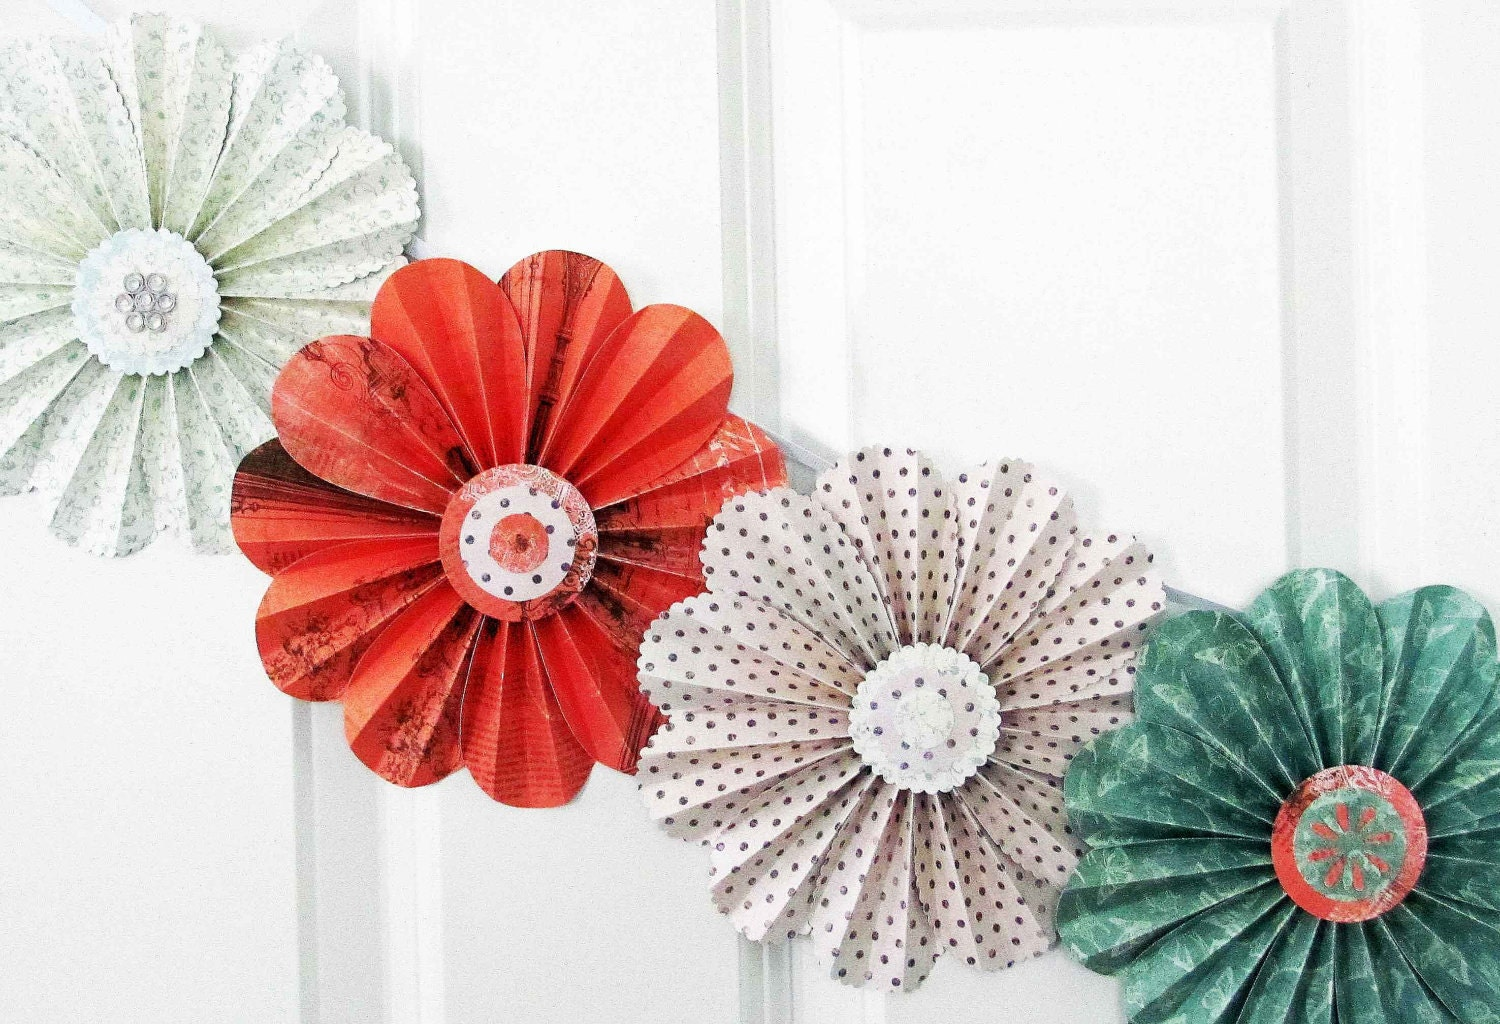 Paper Flowers Floral Garland Party Decor Home Wall Decor